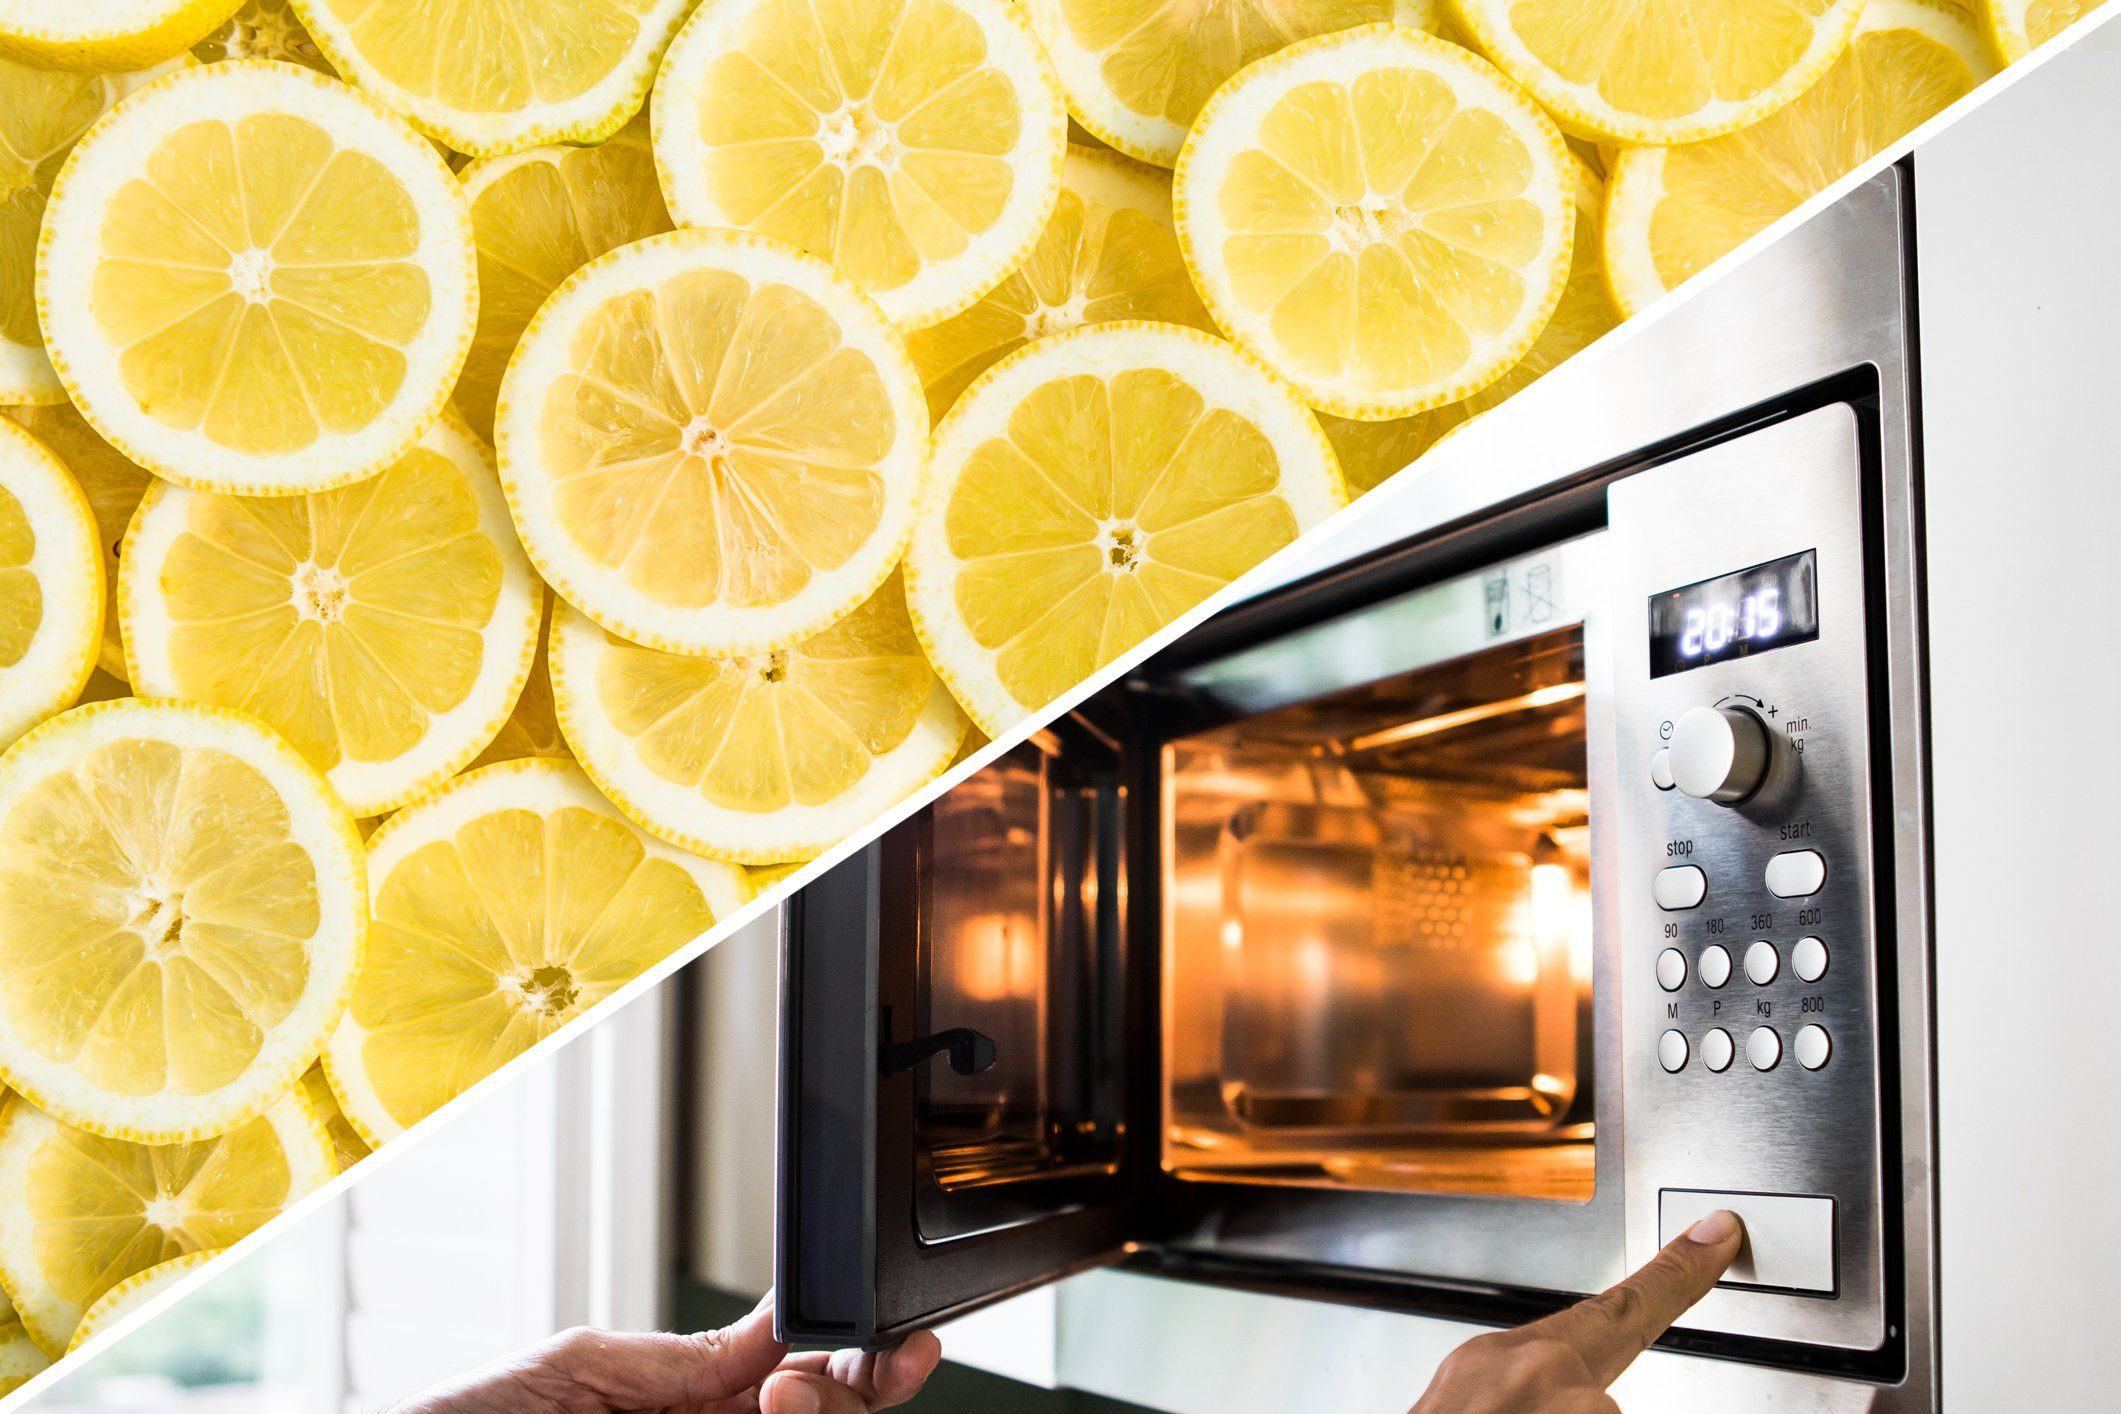 microwave clean lemon uses